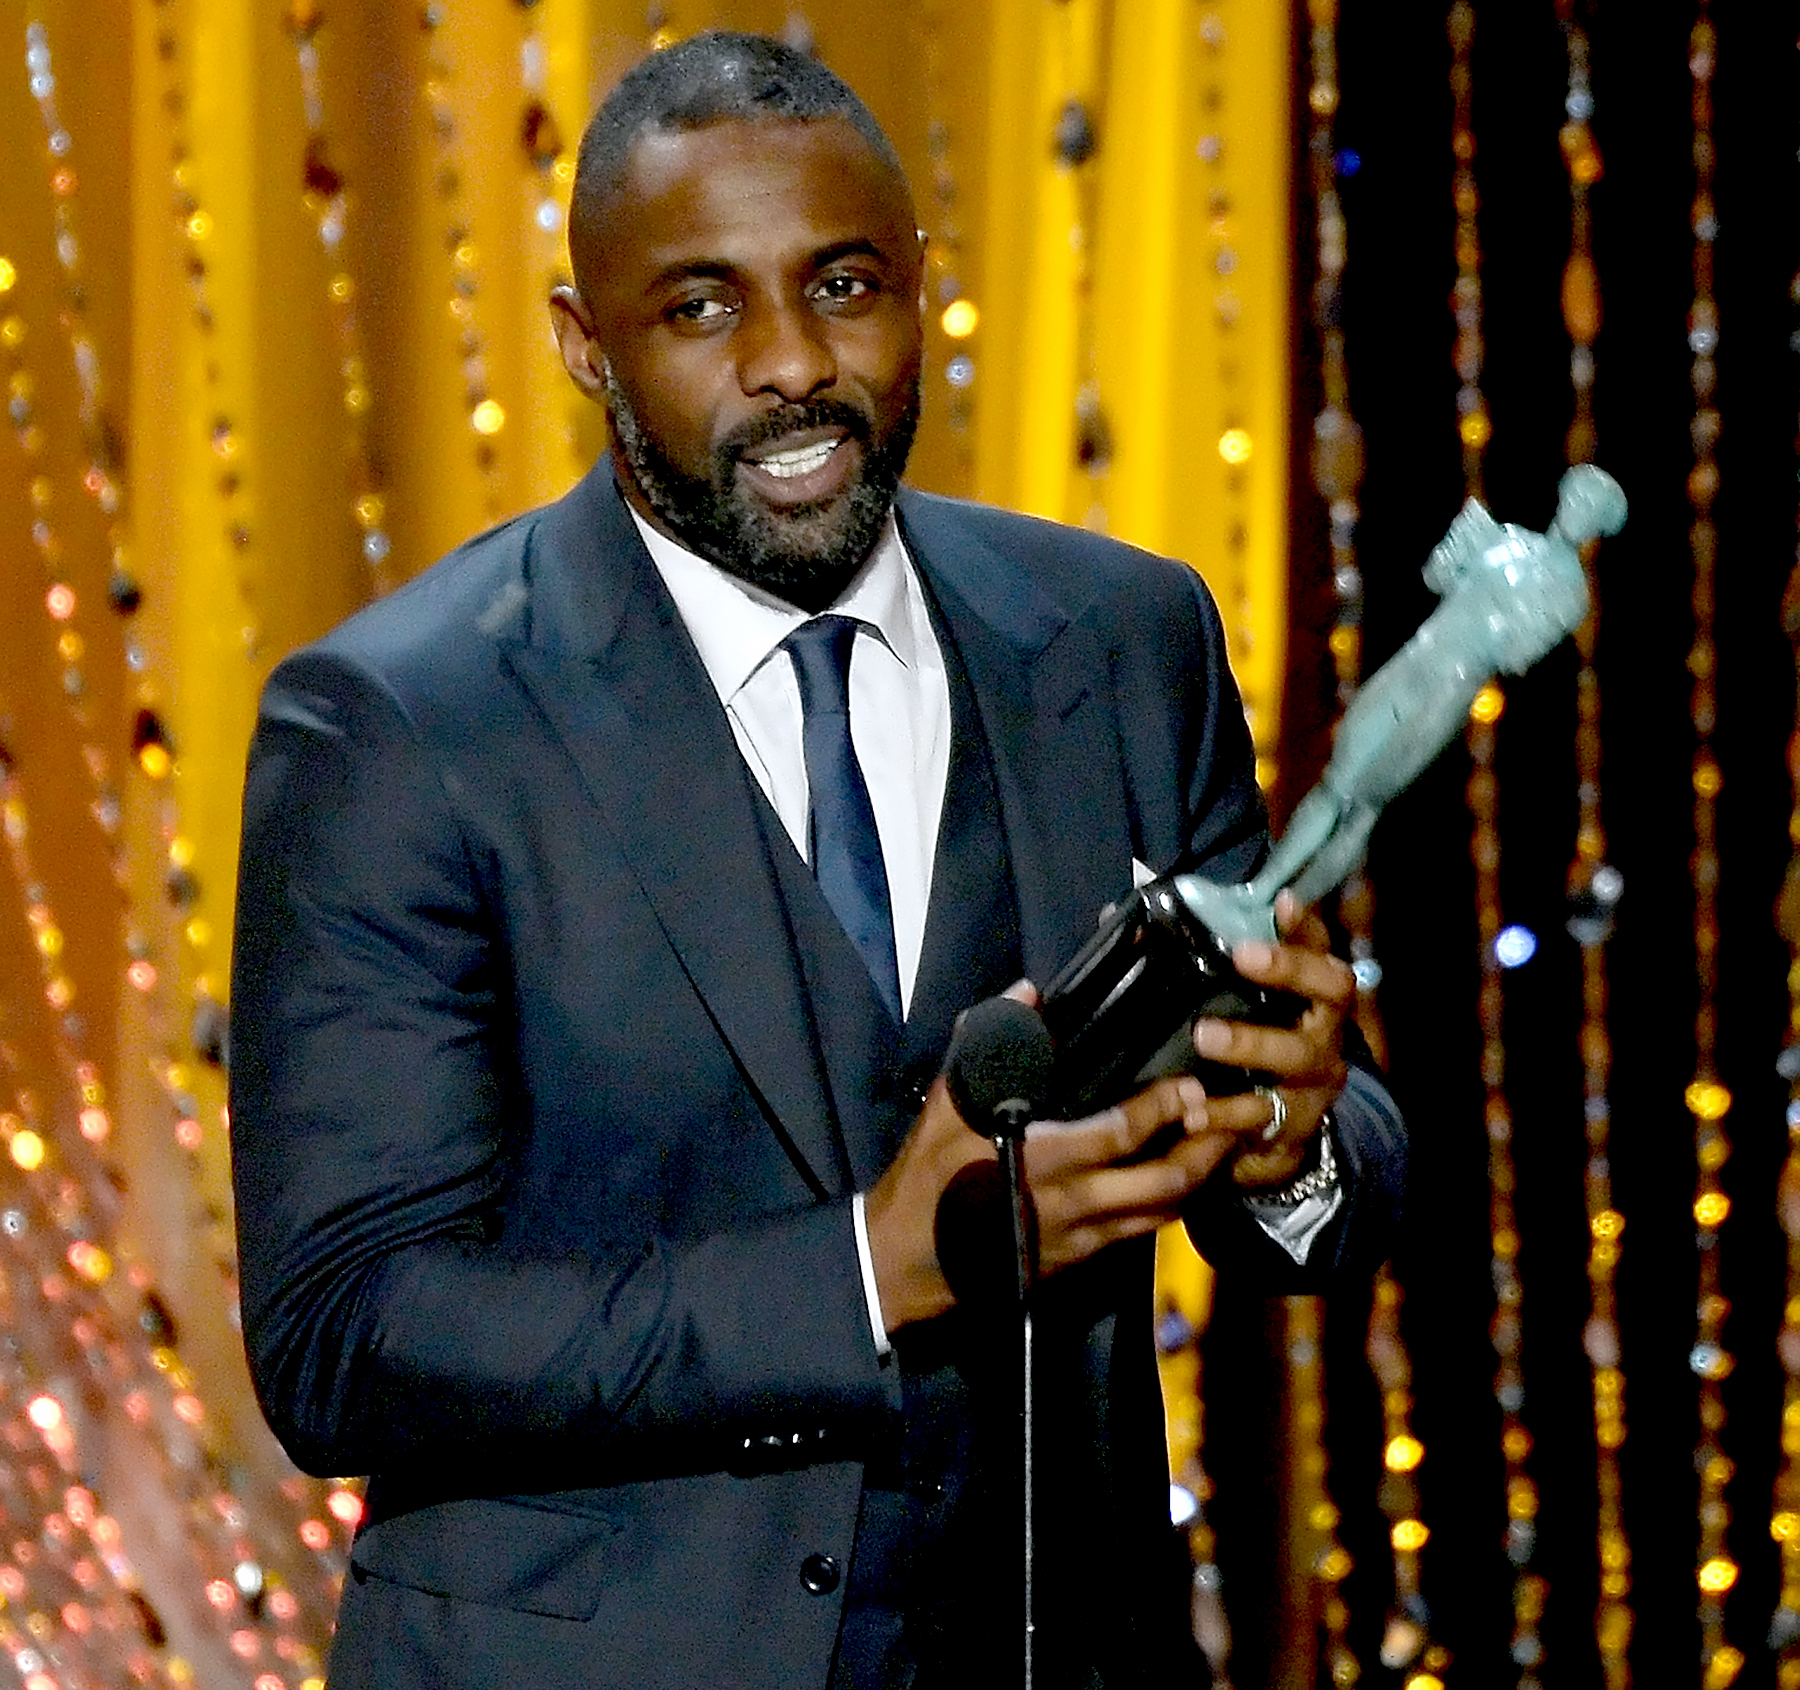 Idris Elba accepts the Outstanding Performance by a Male Actor in a Supporting Role award for